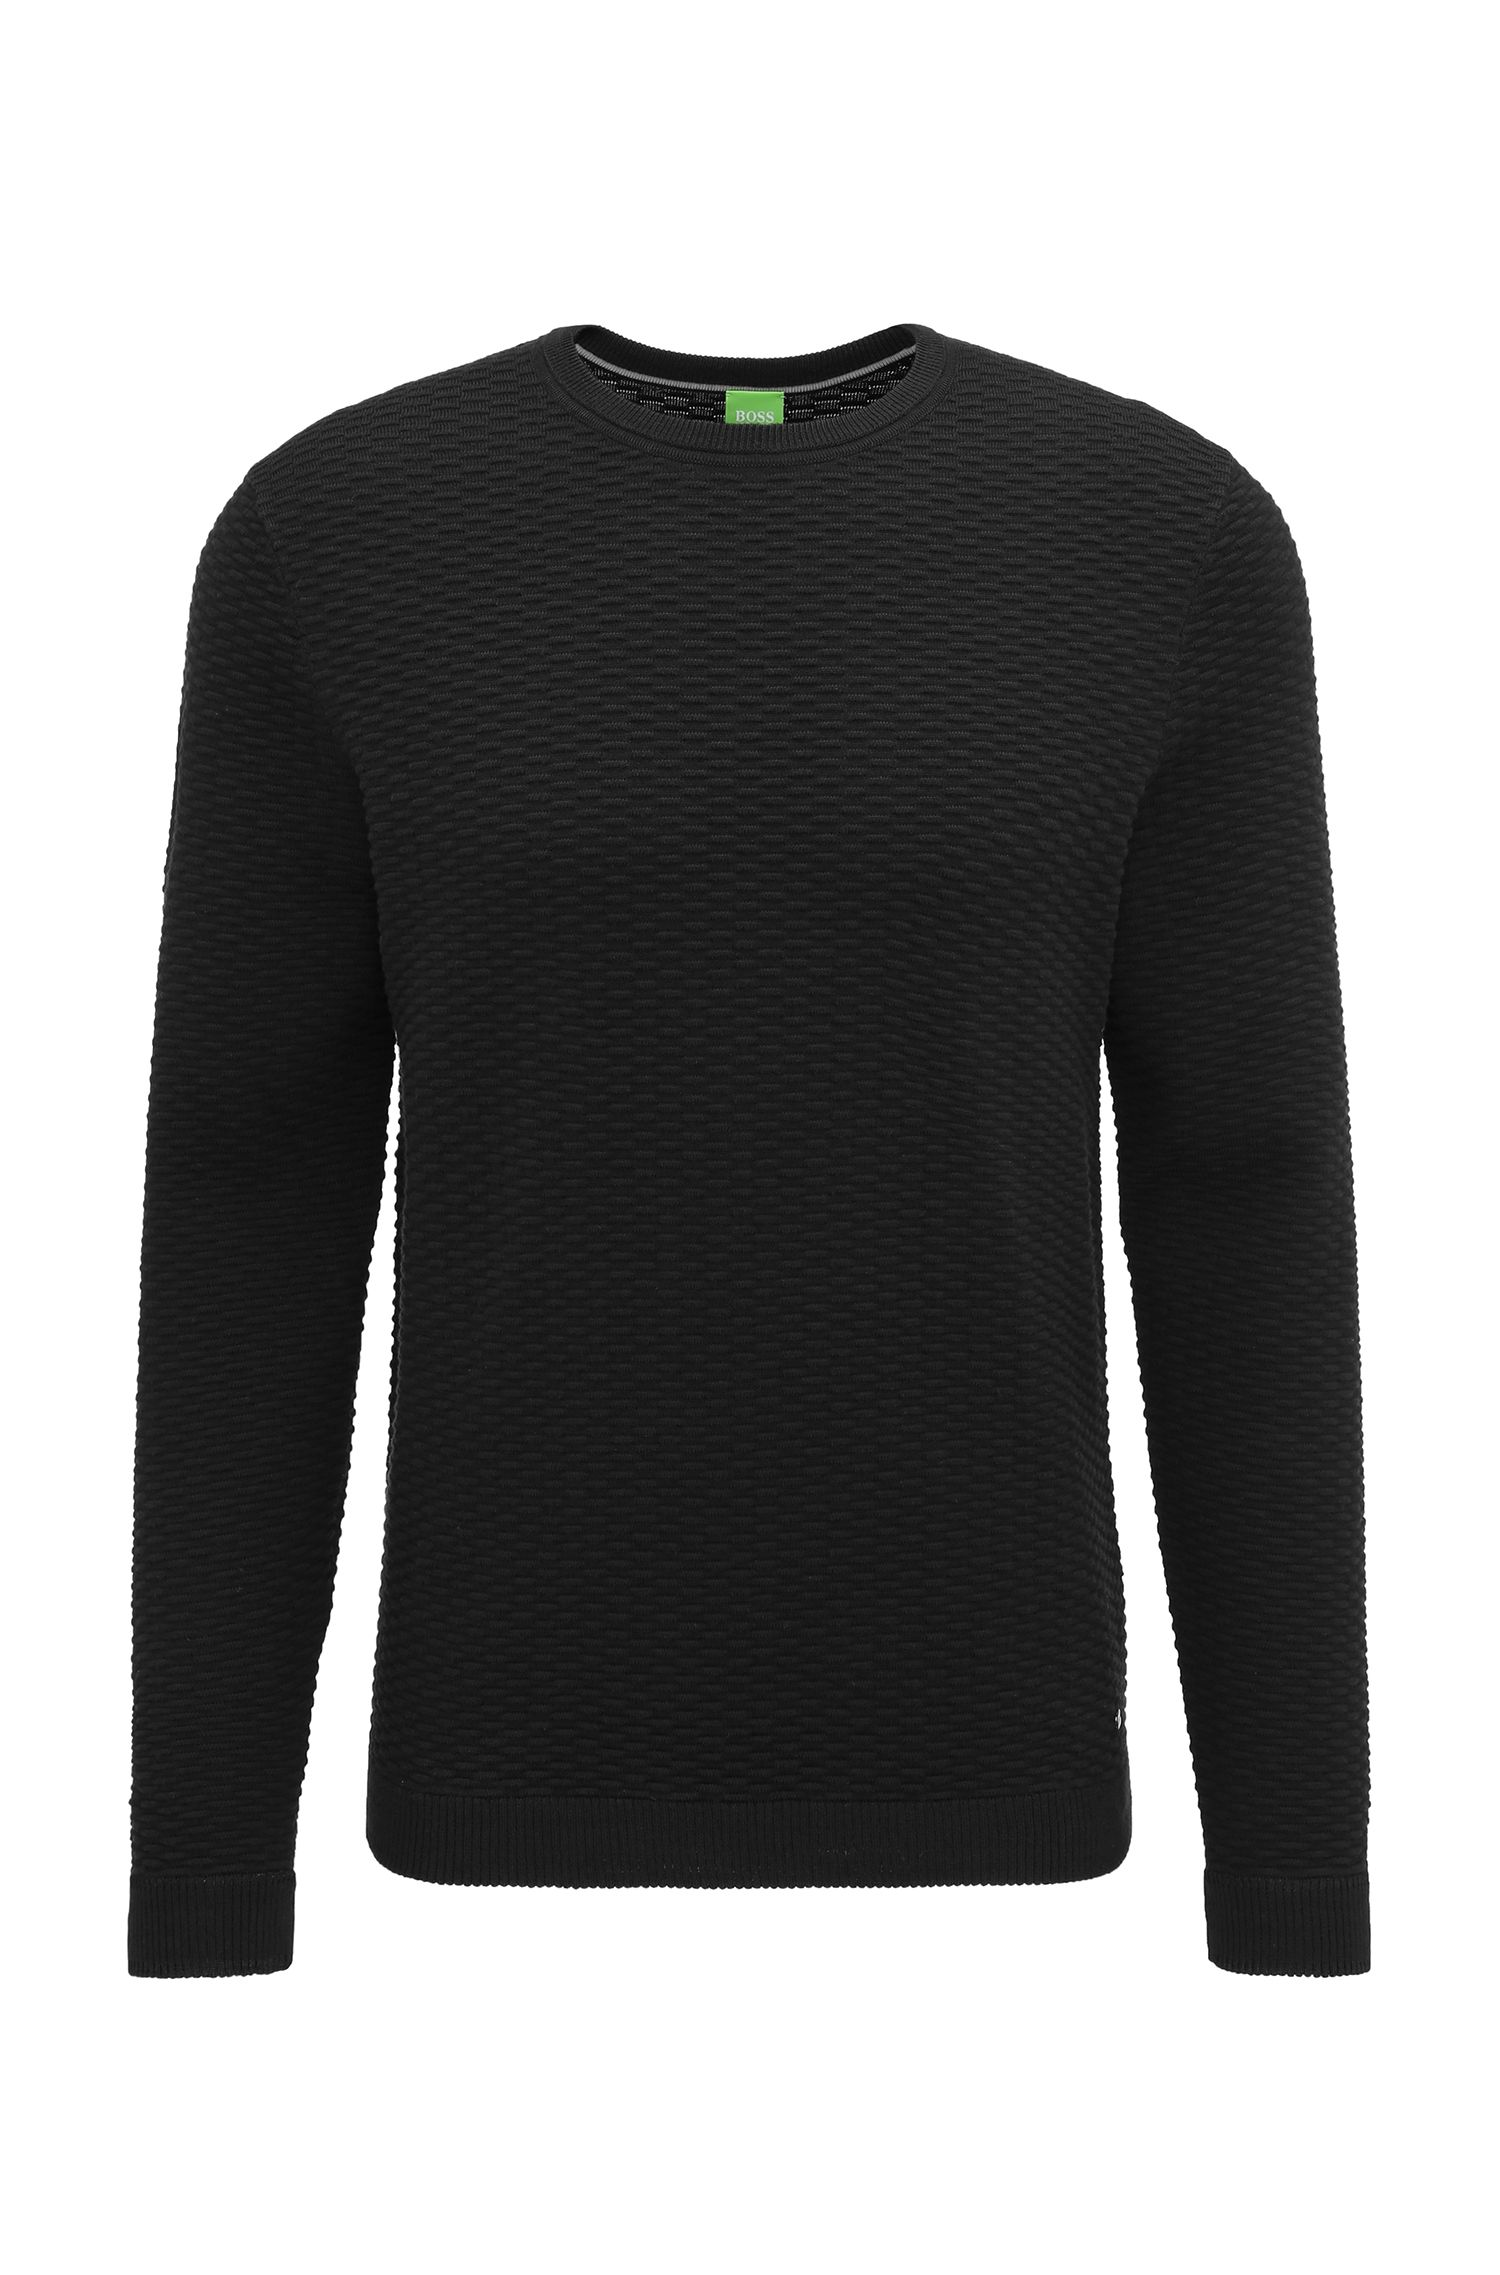 'Rater' | Cotton Blend Sweater